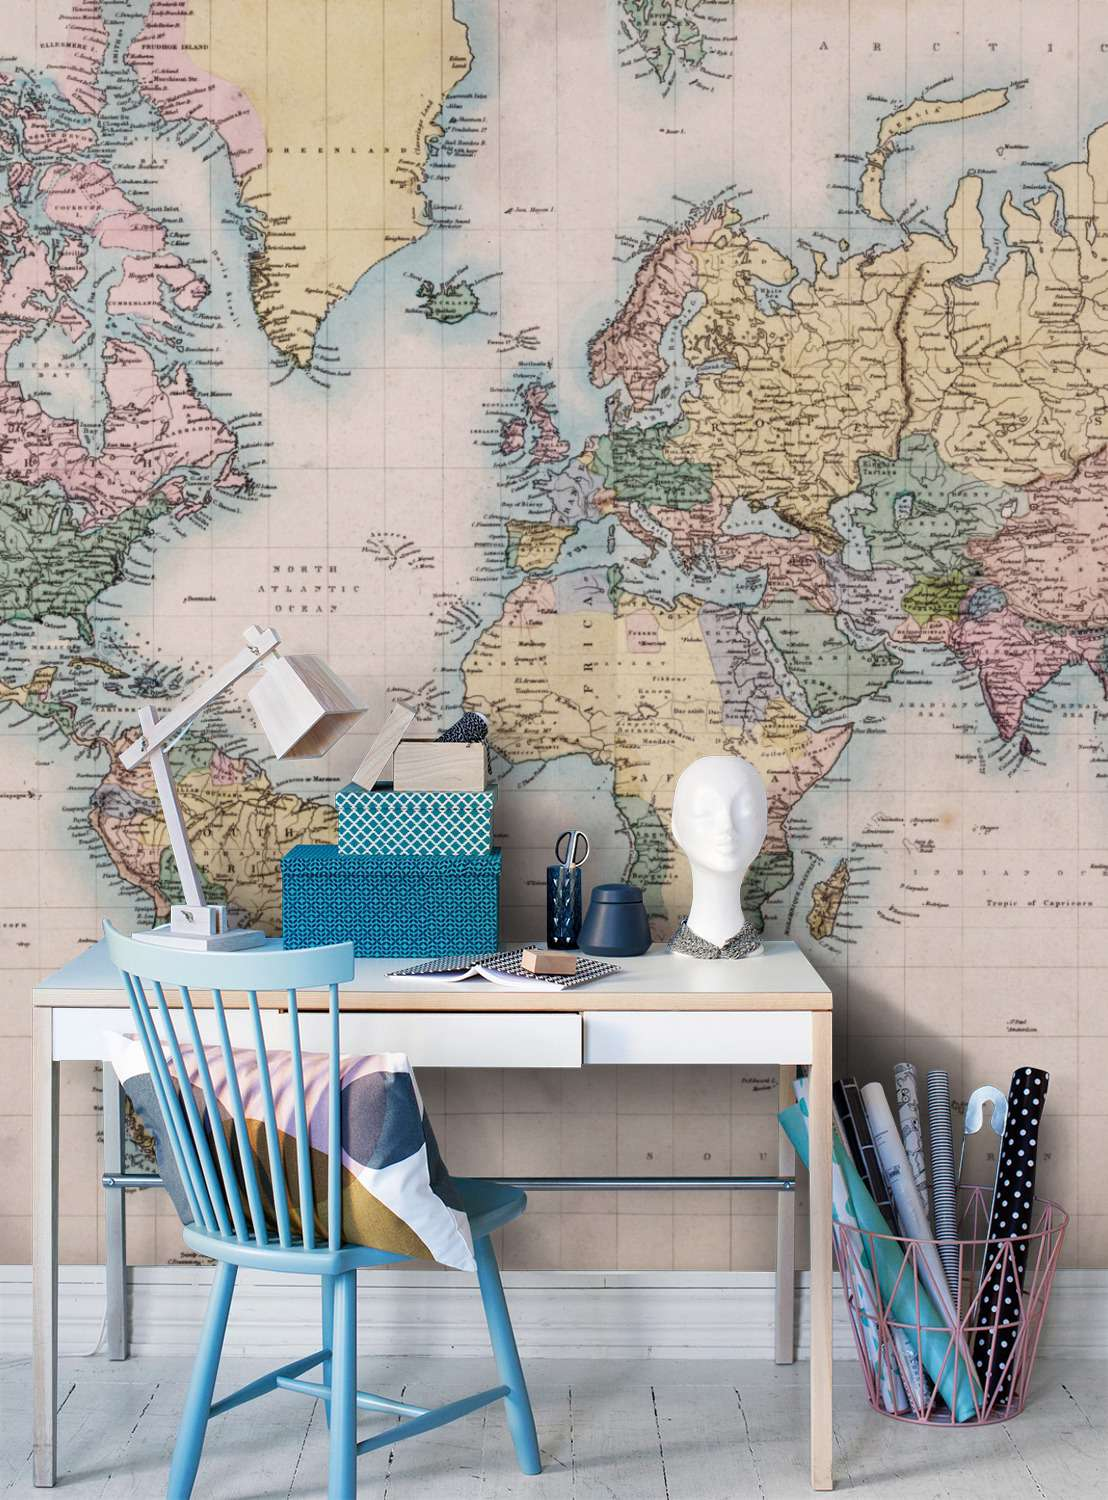 Decorating with wall maps and murals